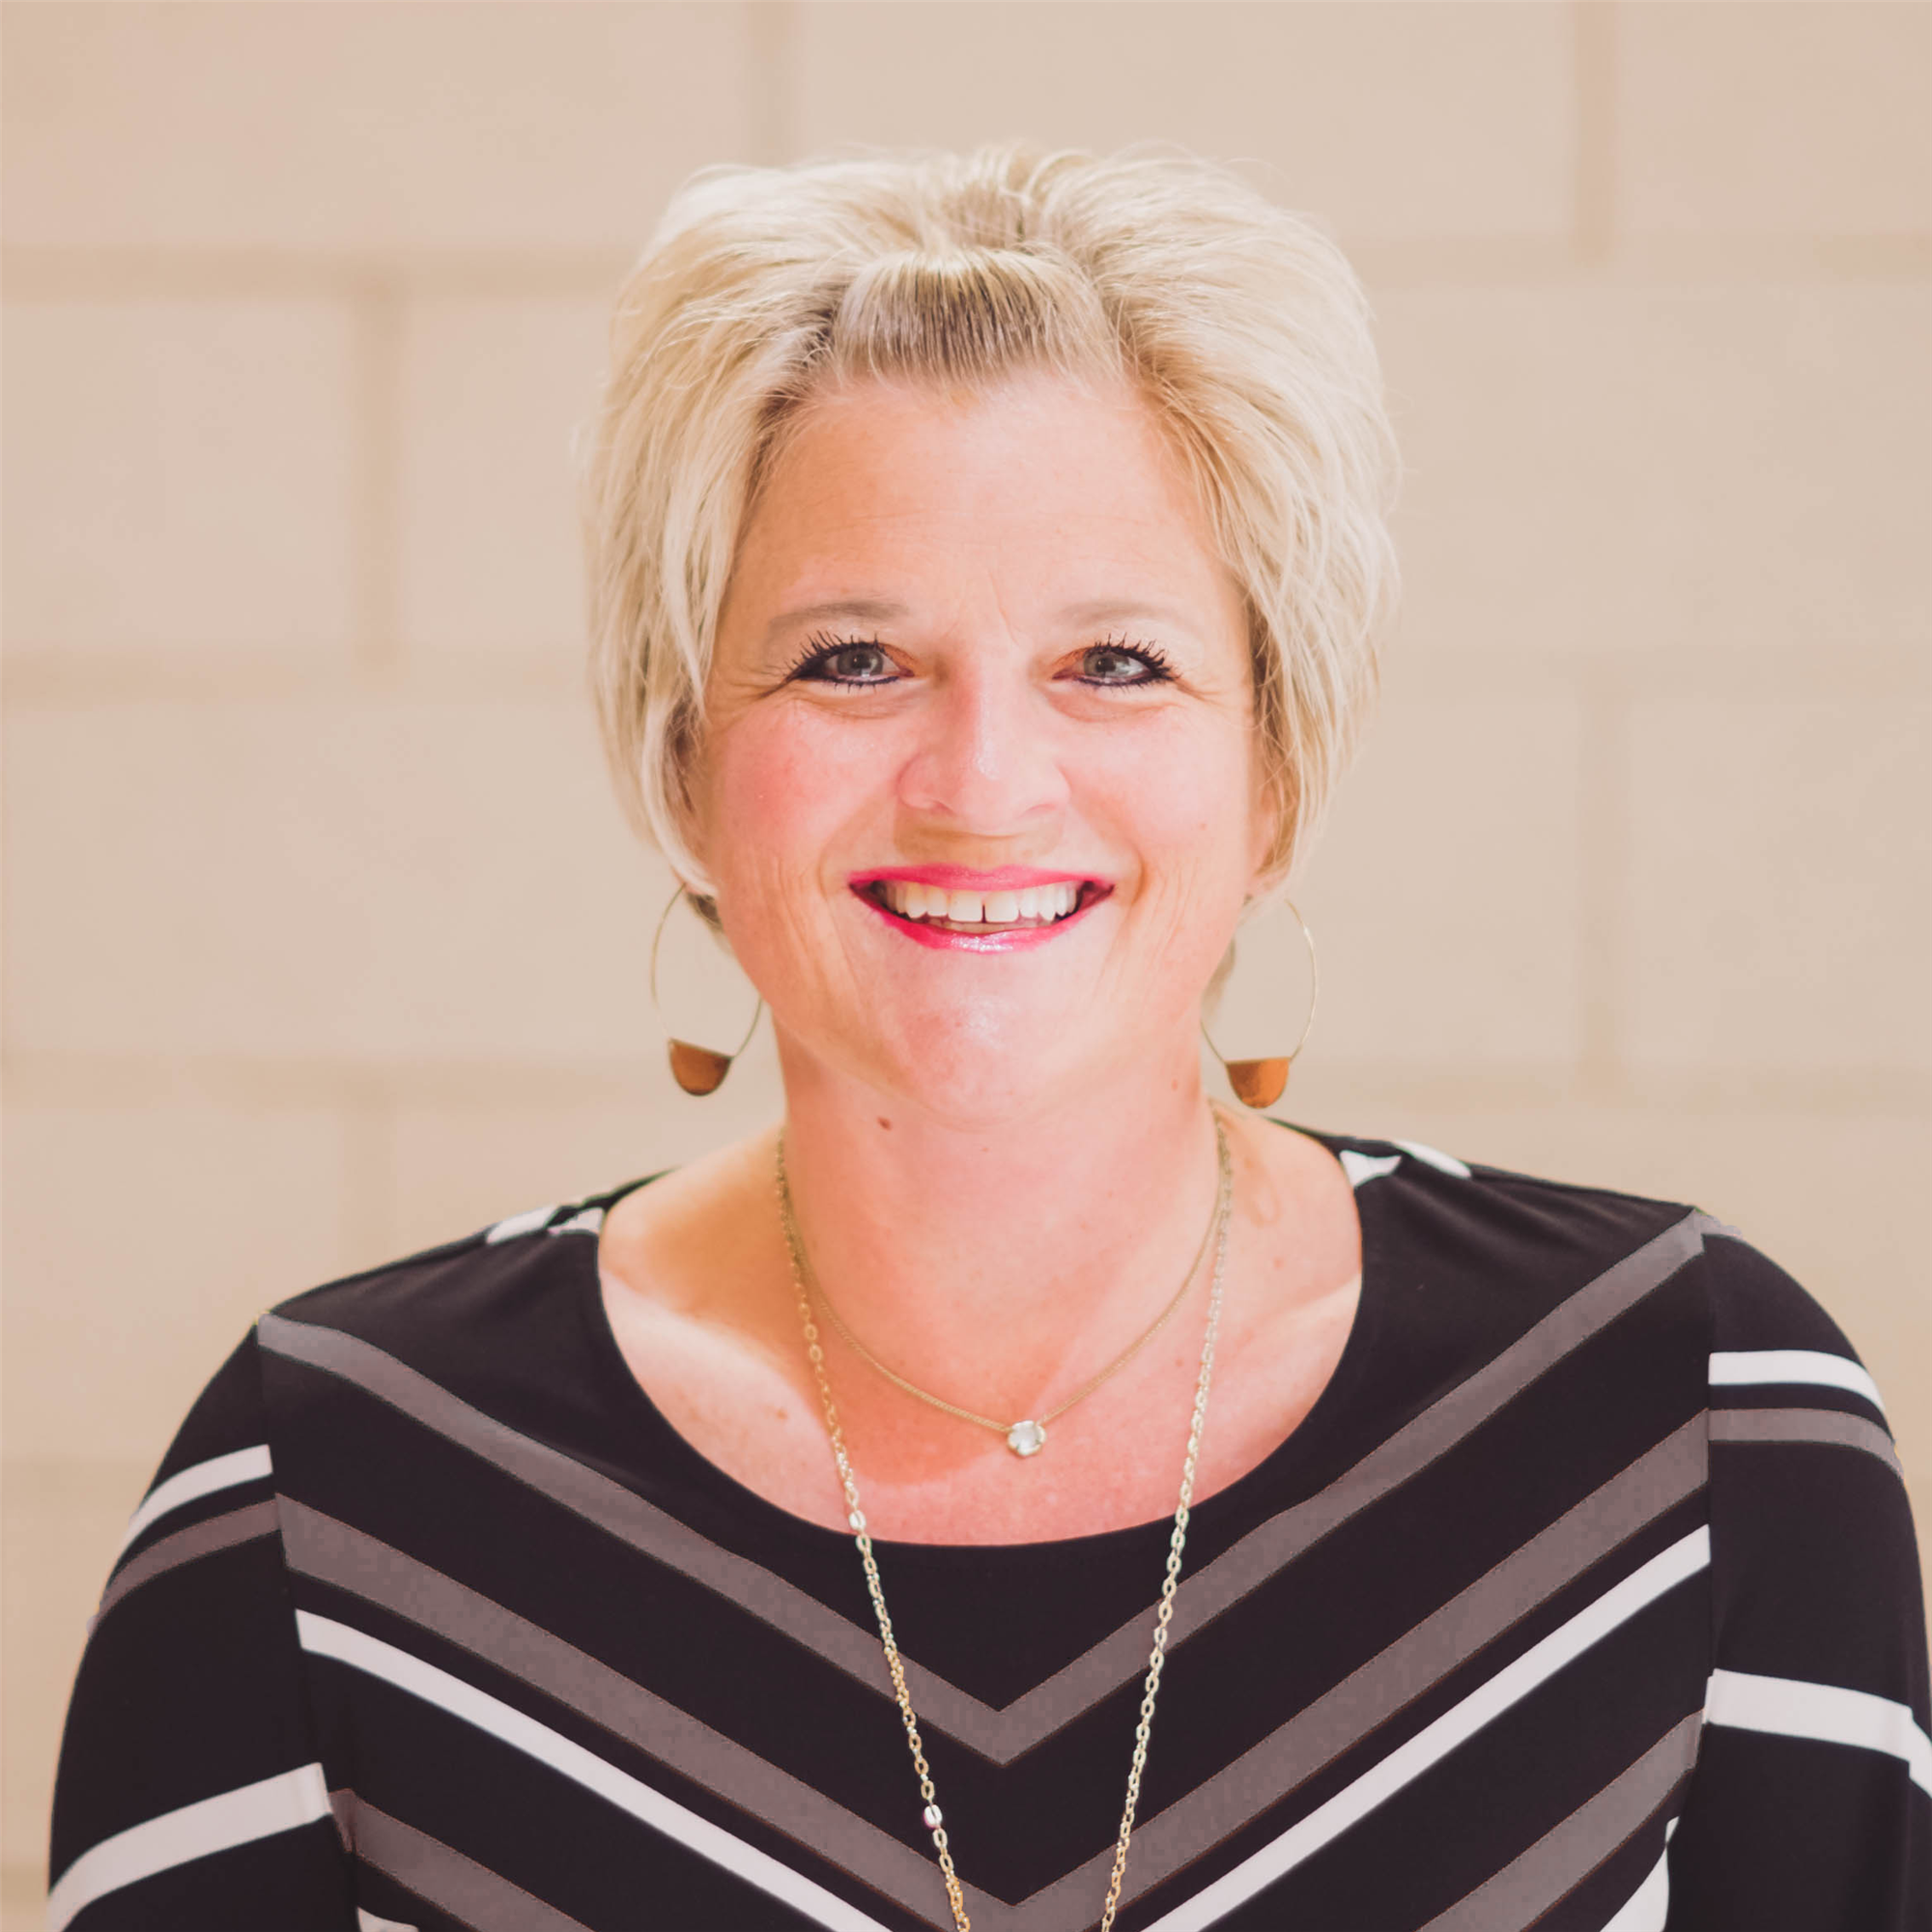 LISD names Amy Boughton Hebron High School Principal.